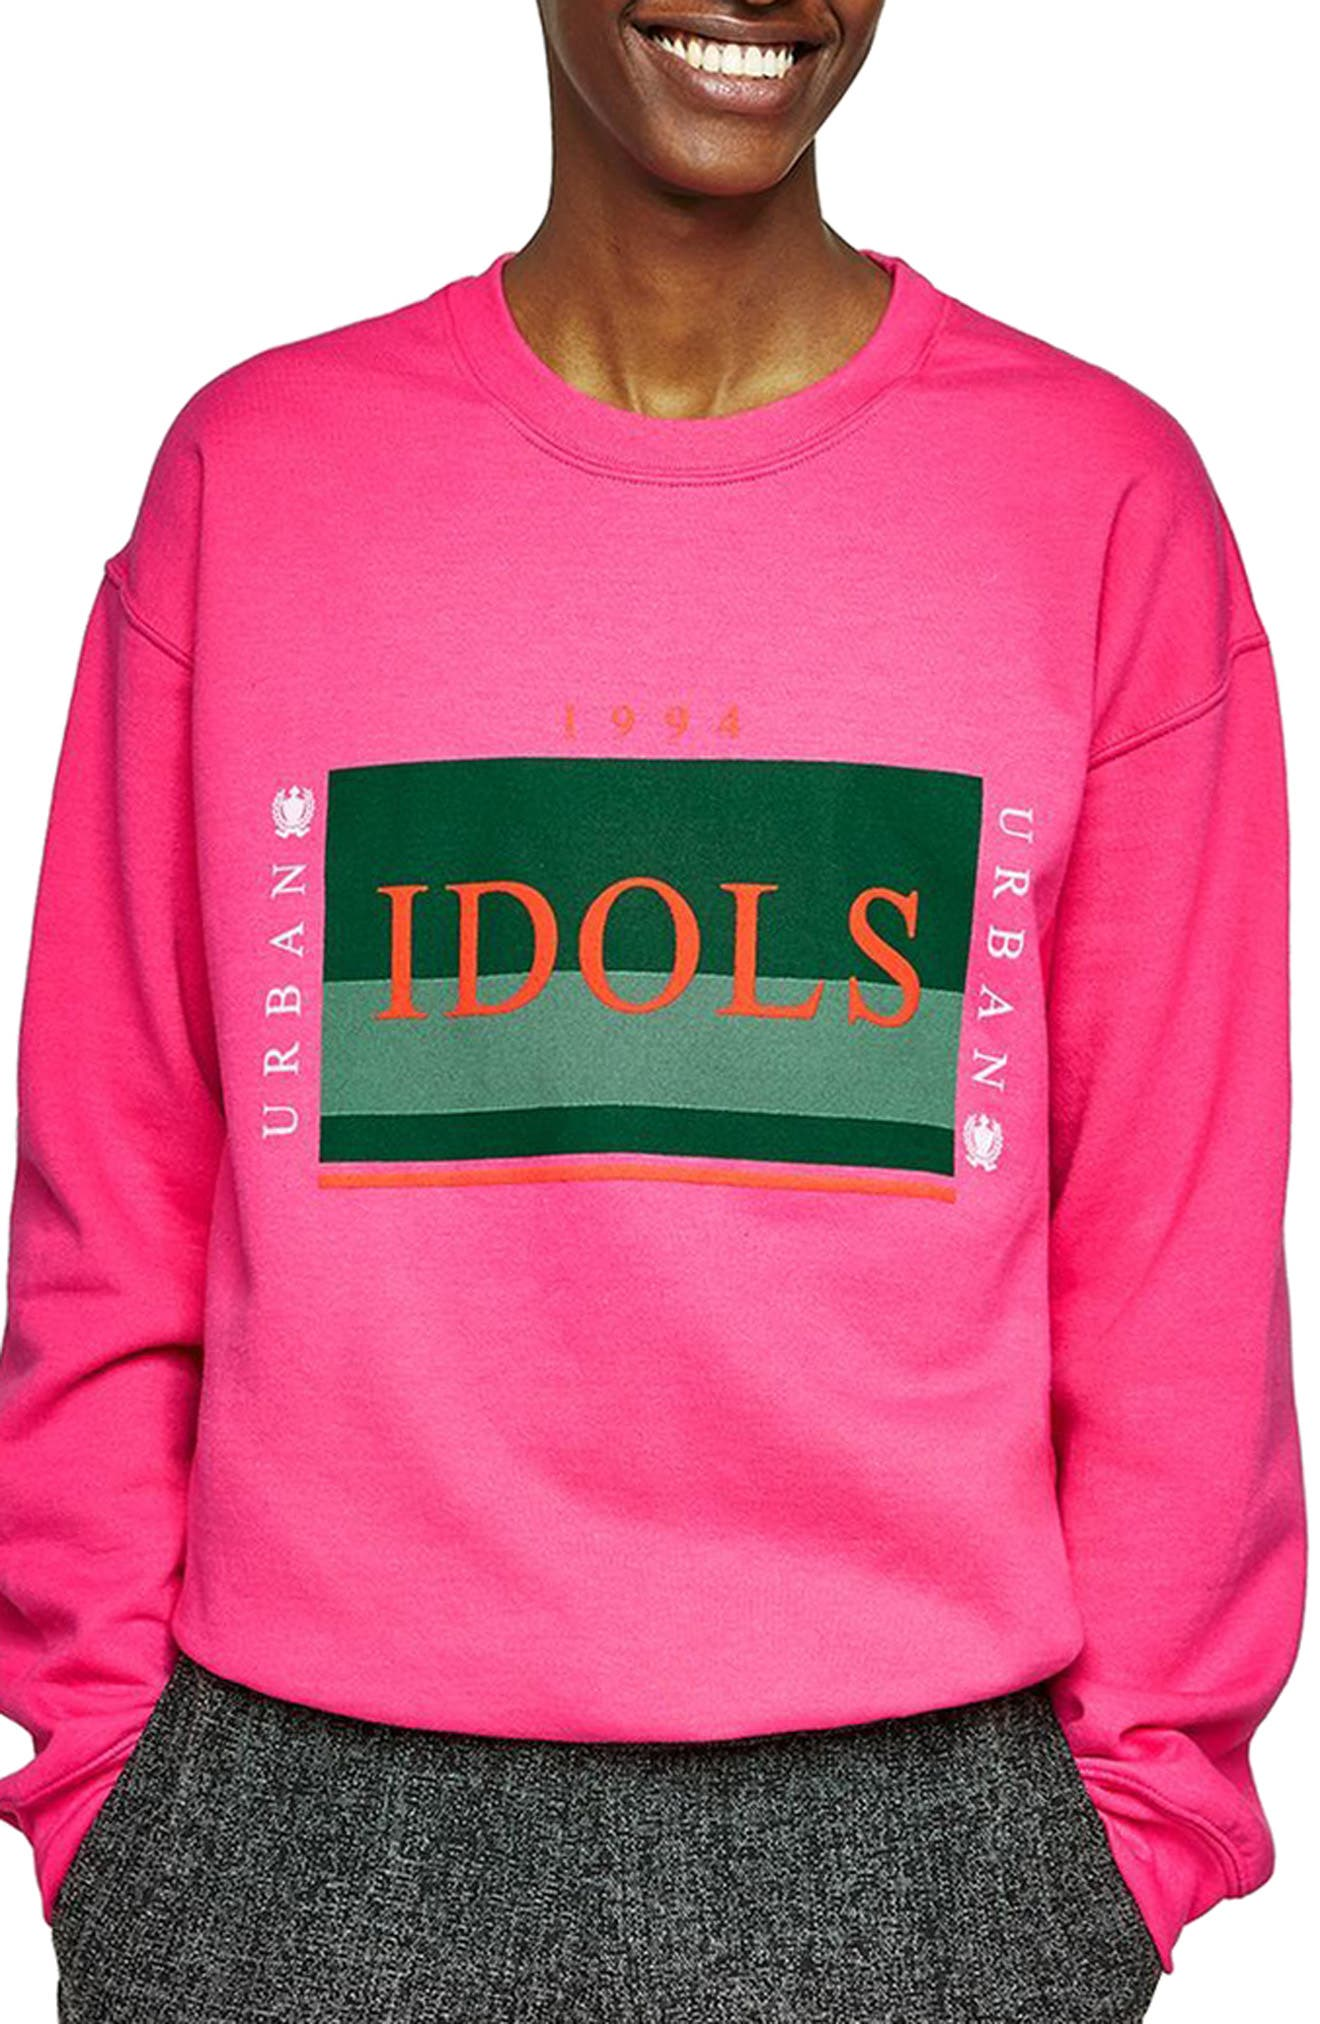 Urban Idols Graphic Sweatshirt,                         Main,                         color, Pink Multi